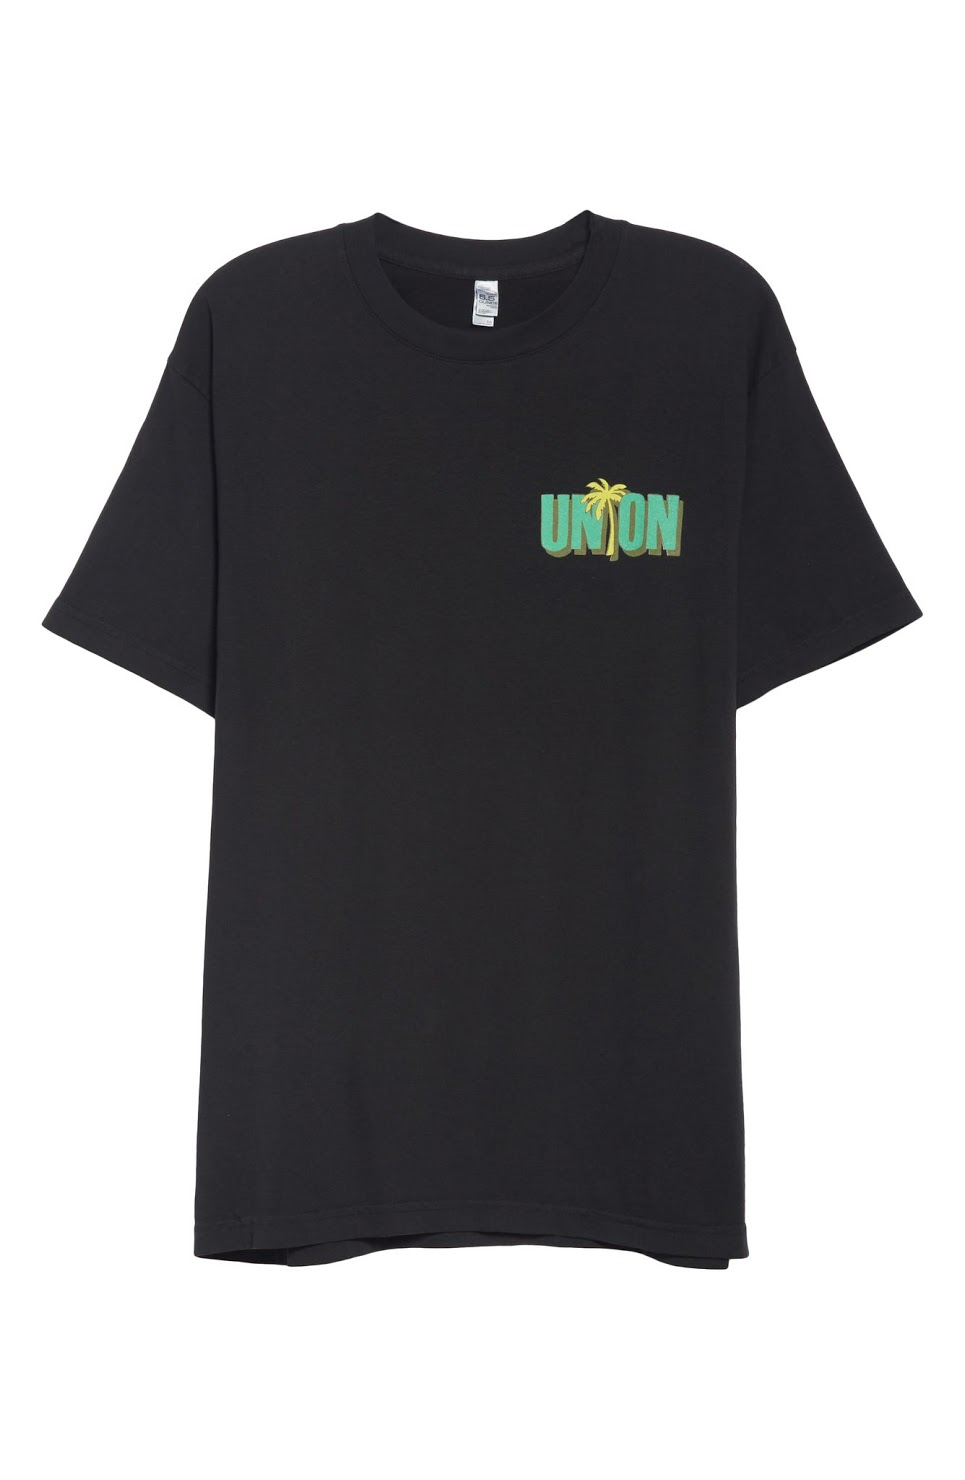 Union_Wha Gwaan Tee_Black_$42.jpeg